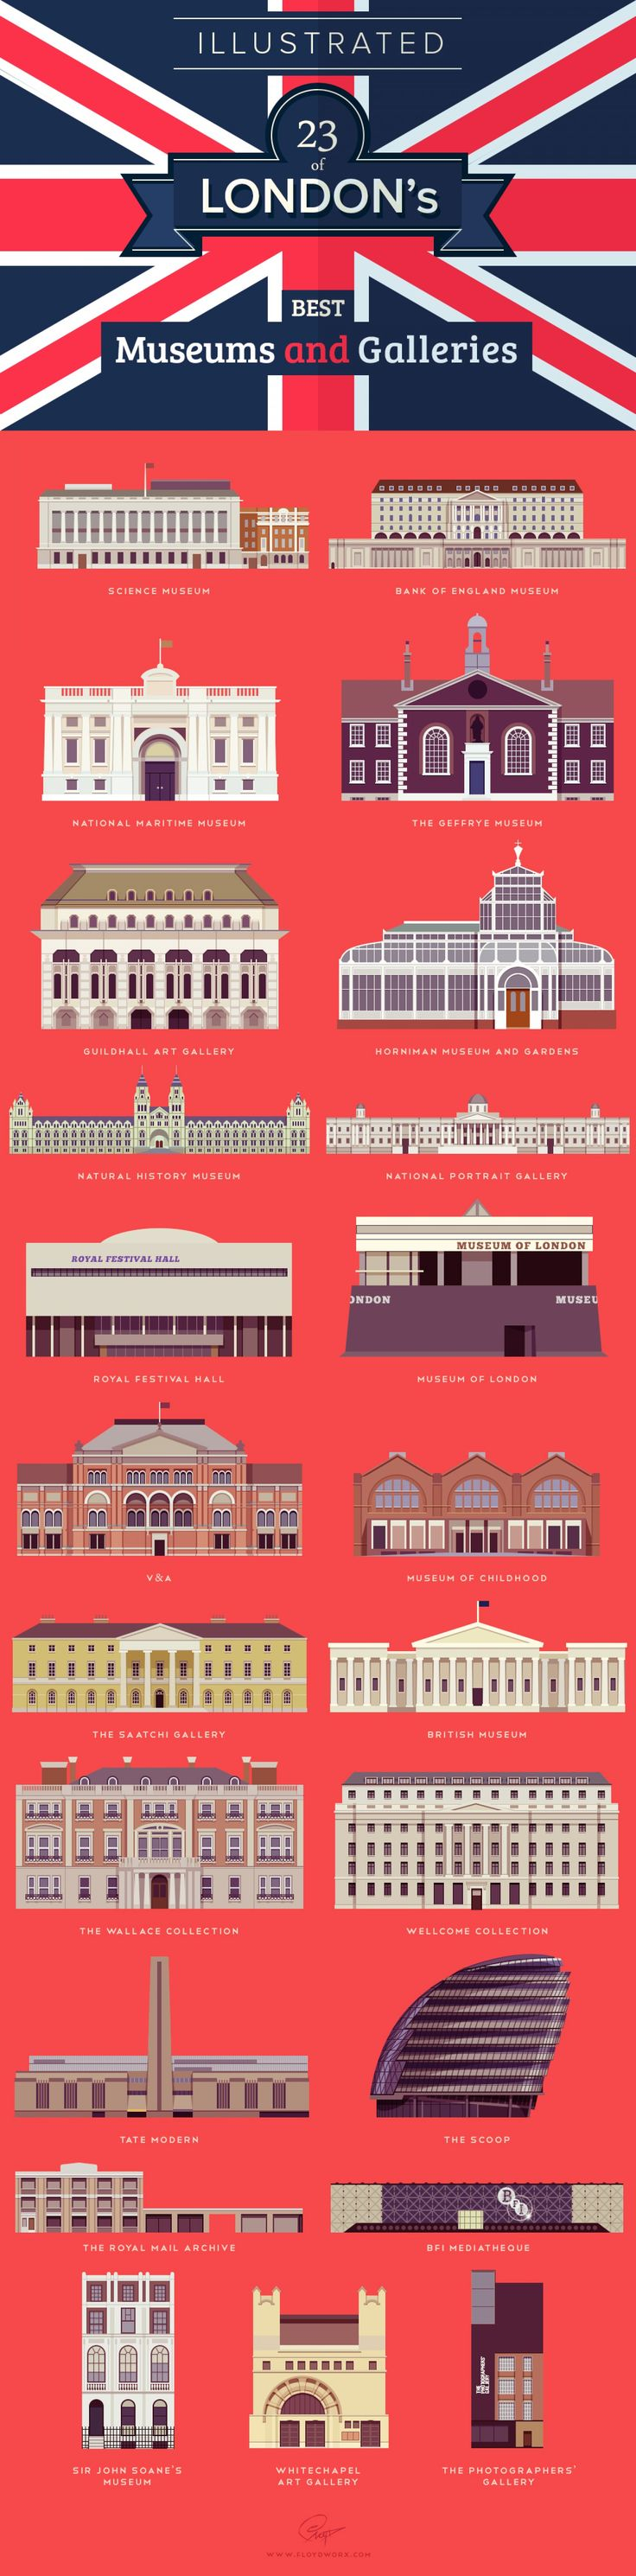 Illustrated 23 of London's best museums and galleries